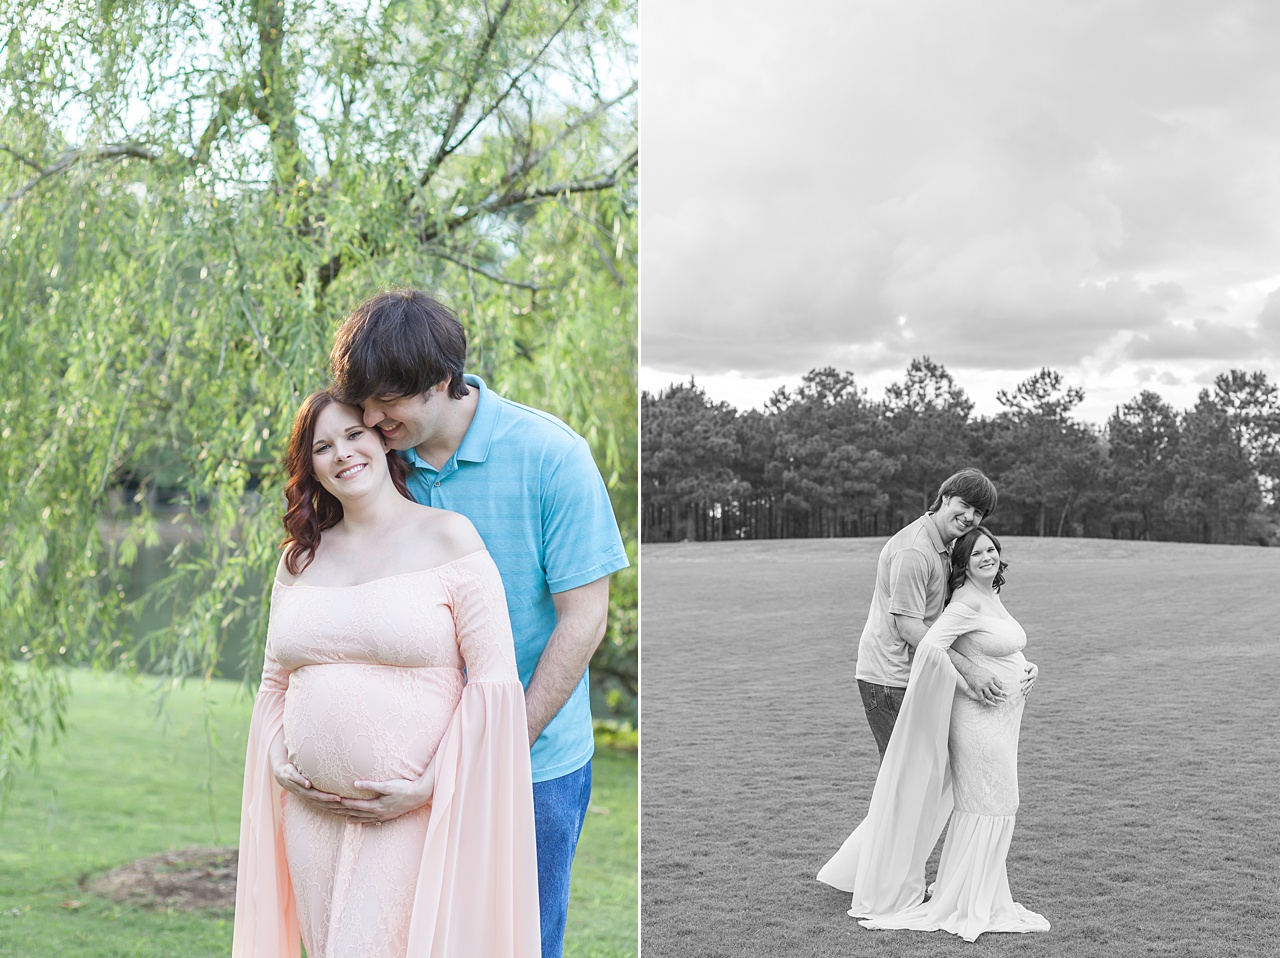 beautiful evening maternity session at rob fleming park in the woodlands, texas by kristal bean photography